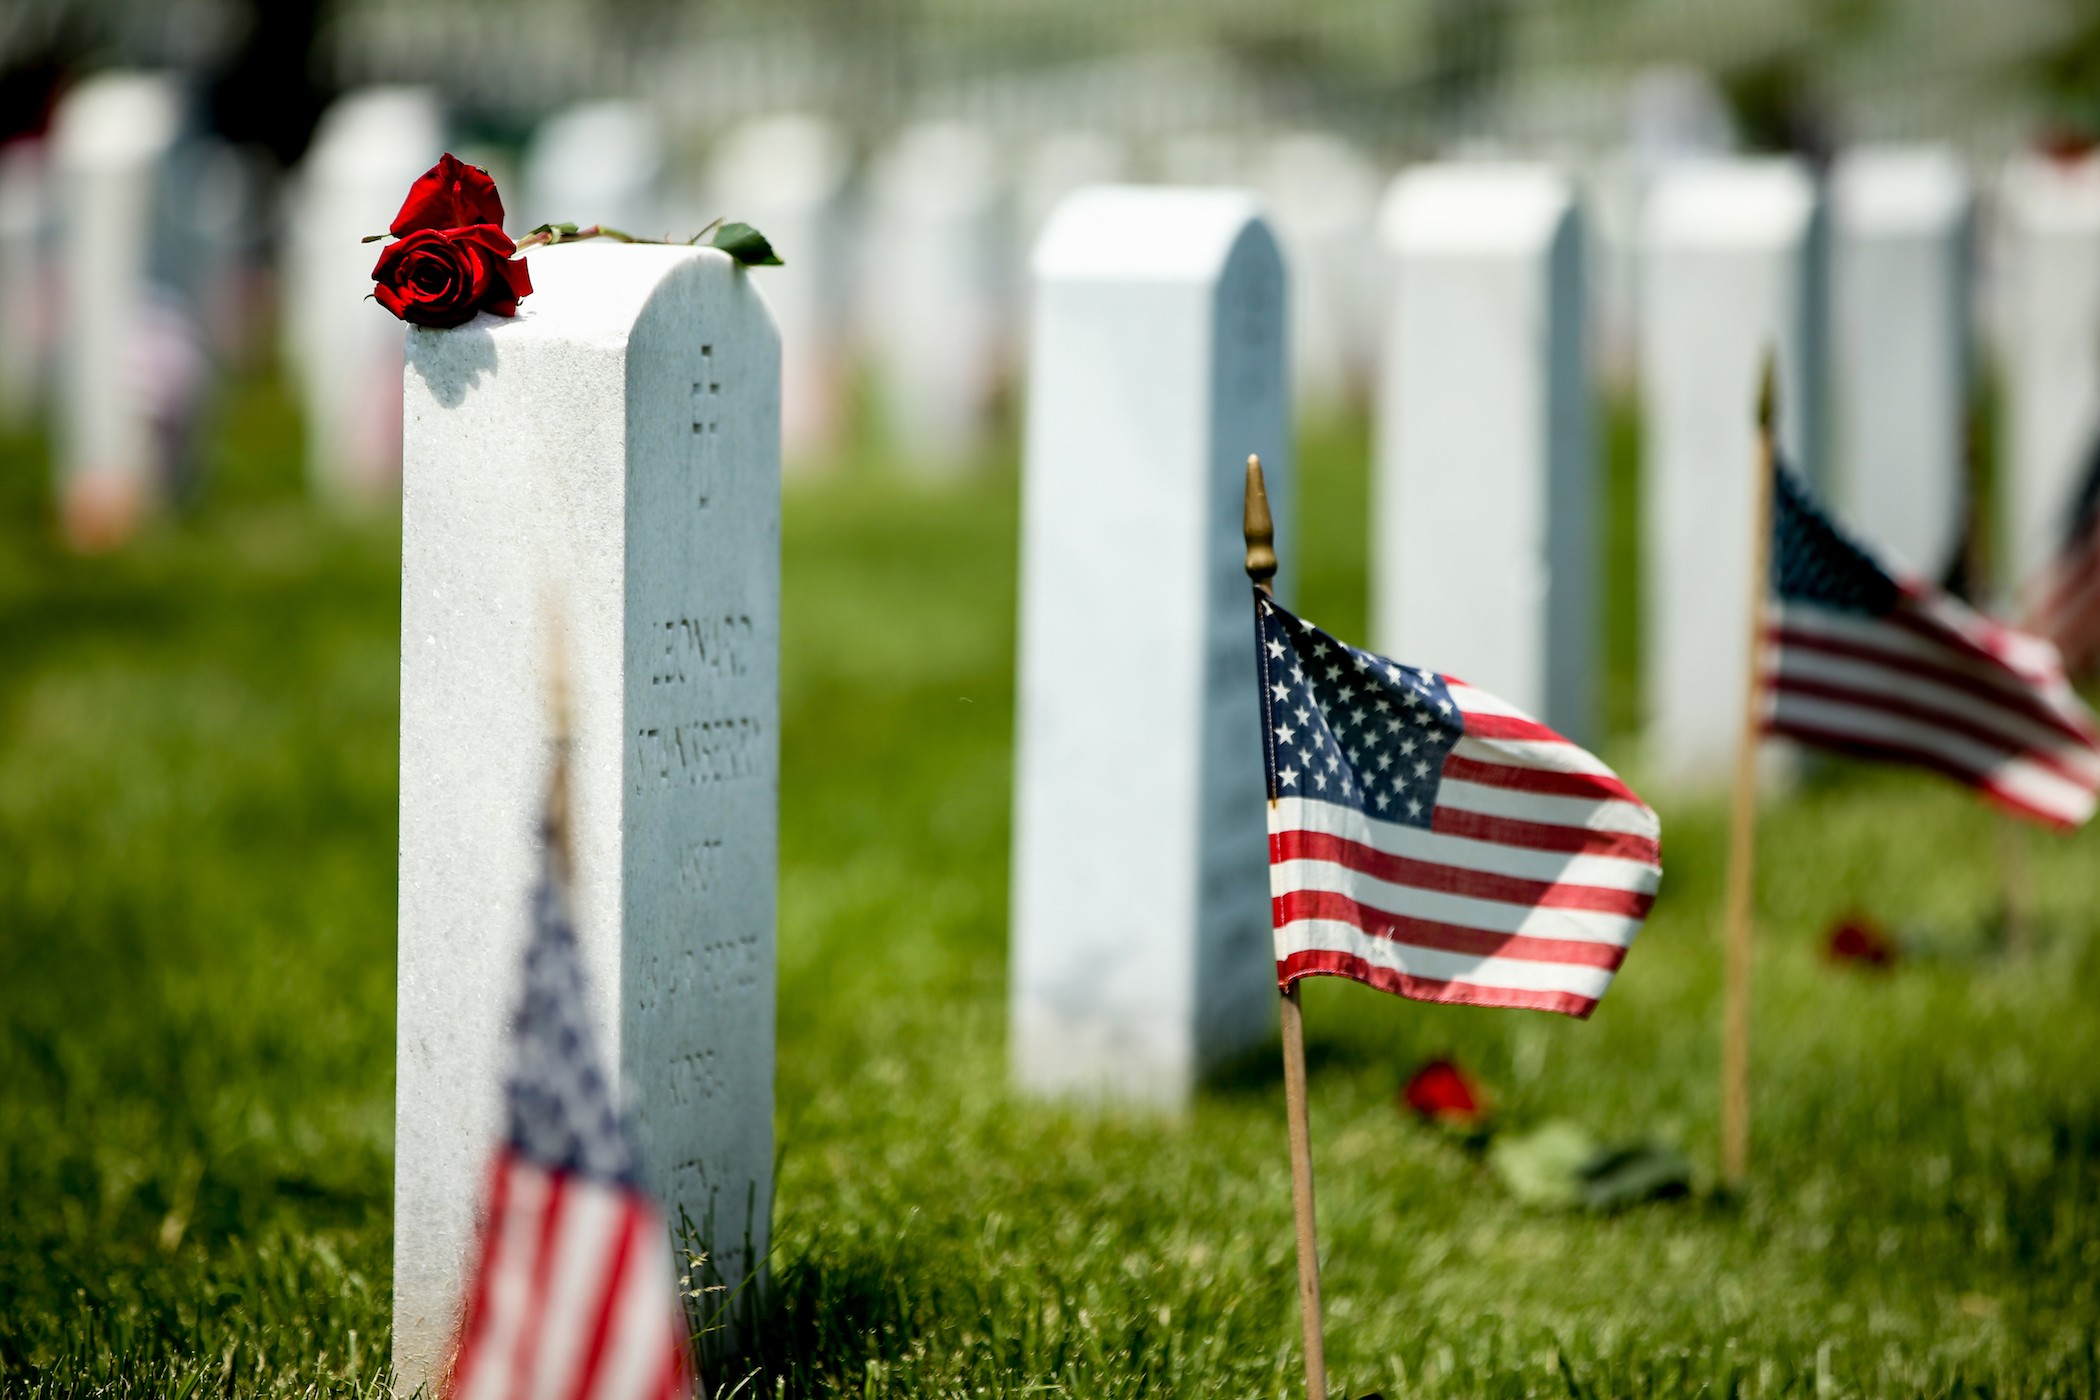 Photo of Rows of Headstones with American flag on